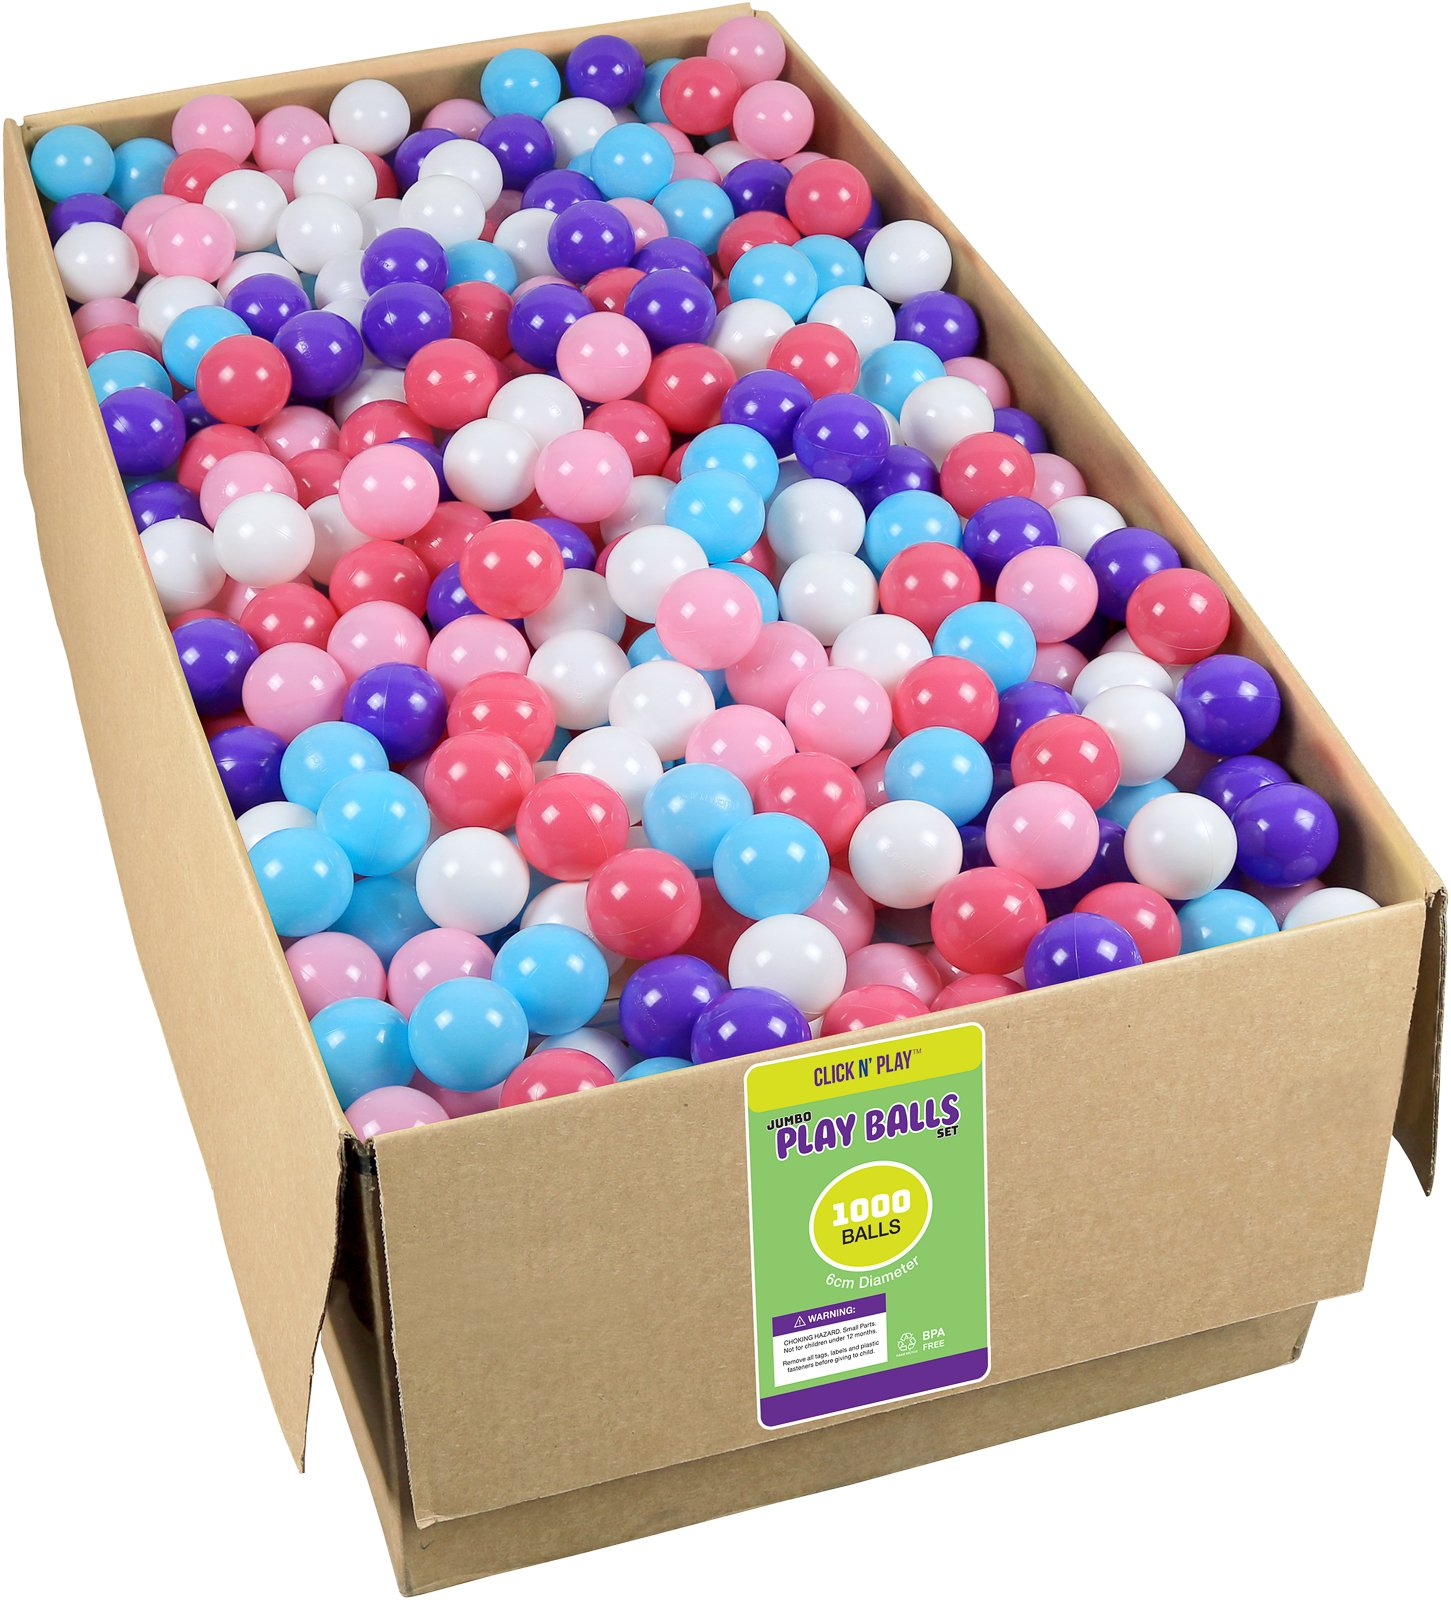 Click N Play Plastic Ball Phthalate Free Bpa Free Crush Proof Pit Balls 5 Bright Colors (Value Pack 1000 Balls ) by Click N Play